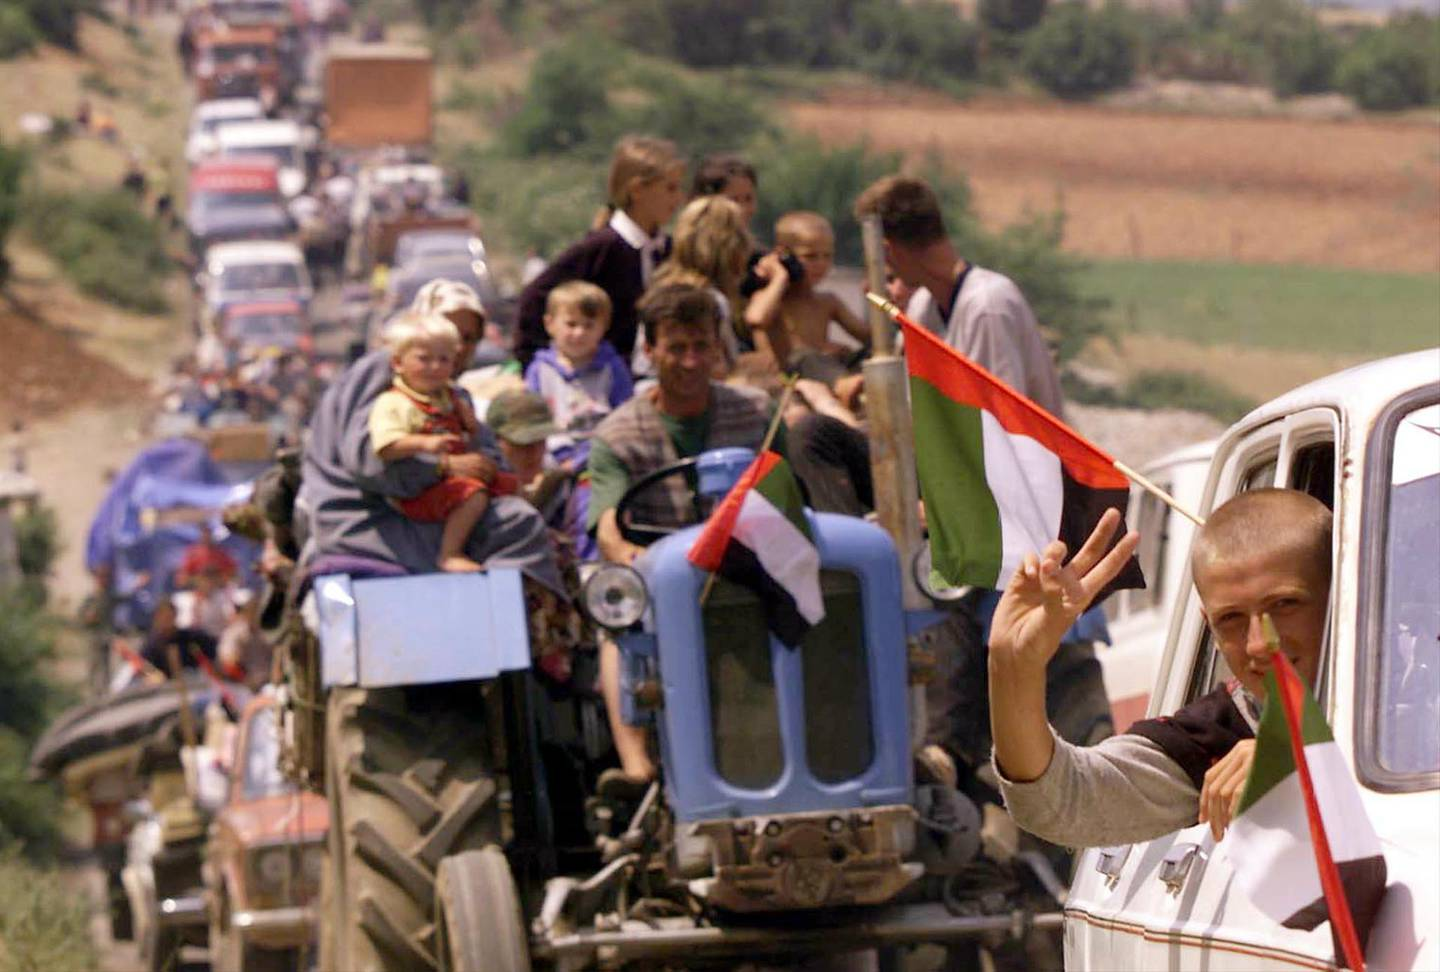 Thousands of refugees backed up for miles make their way across the border from Albania into Kosovo Wednesday June 16, 1999. There are more than 120,000 refugees in the Kukes area and thousands began heading home after weeks living in exile despite NATO and UNHCR warnings that their security is still not assured in Kosovo.  Flags are of the United Arab Emirates, who ran a refugee camp and contributed to the humanitarian aid effort in Albania. (AP Photo/David Guttenfelder)